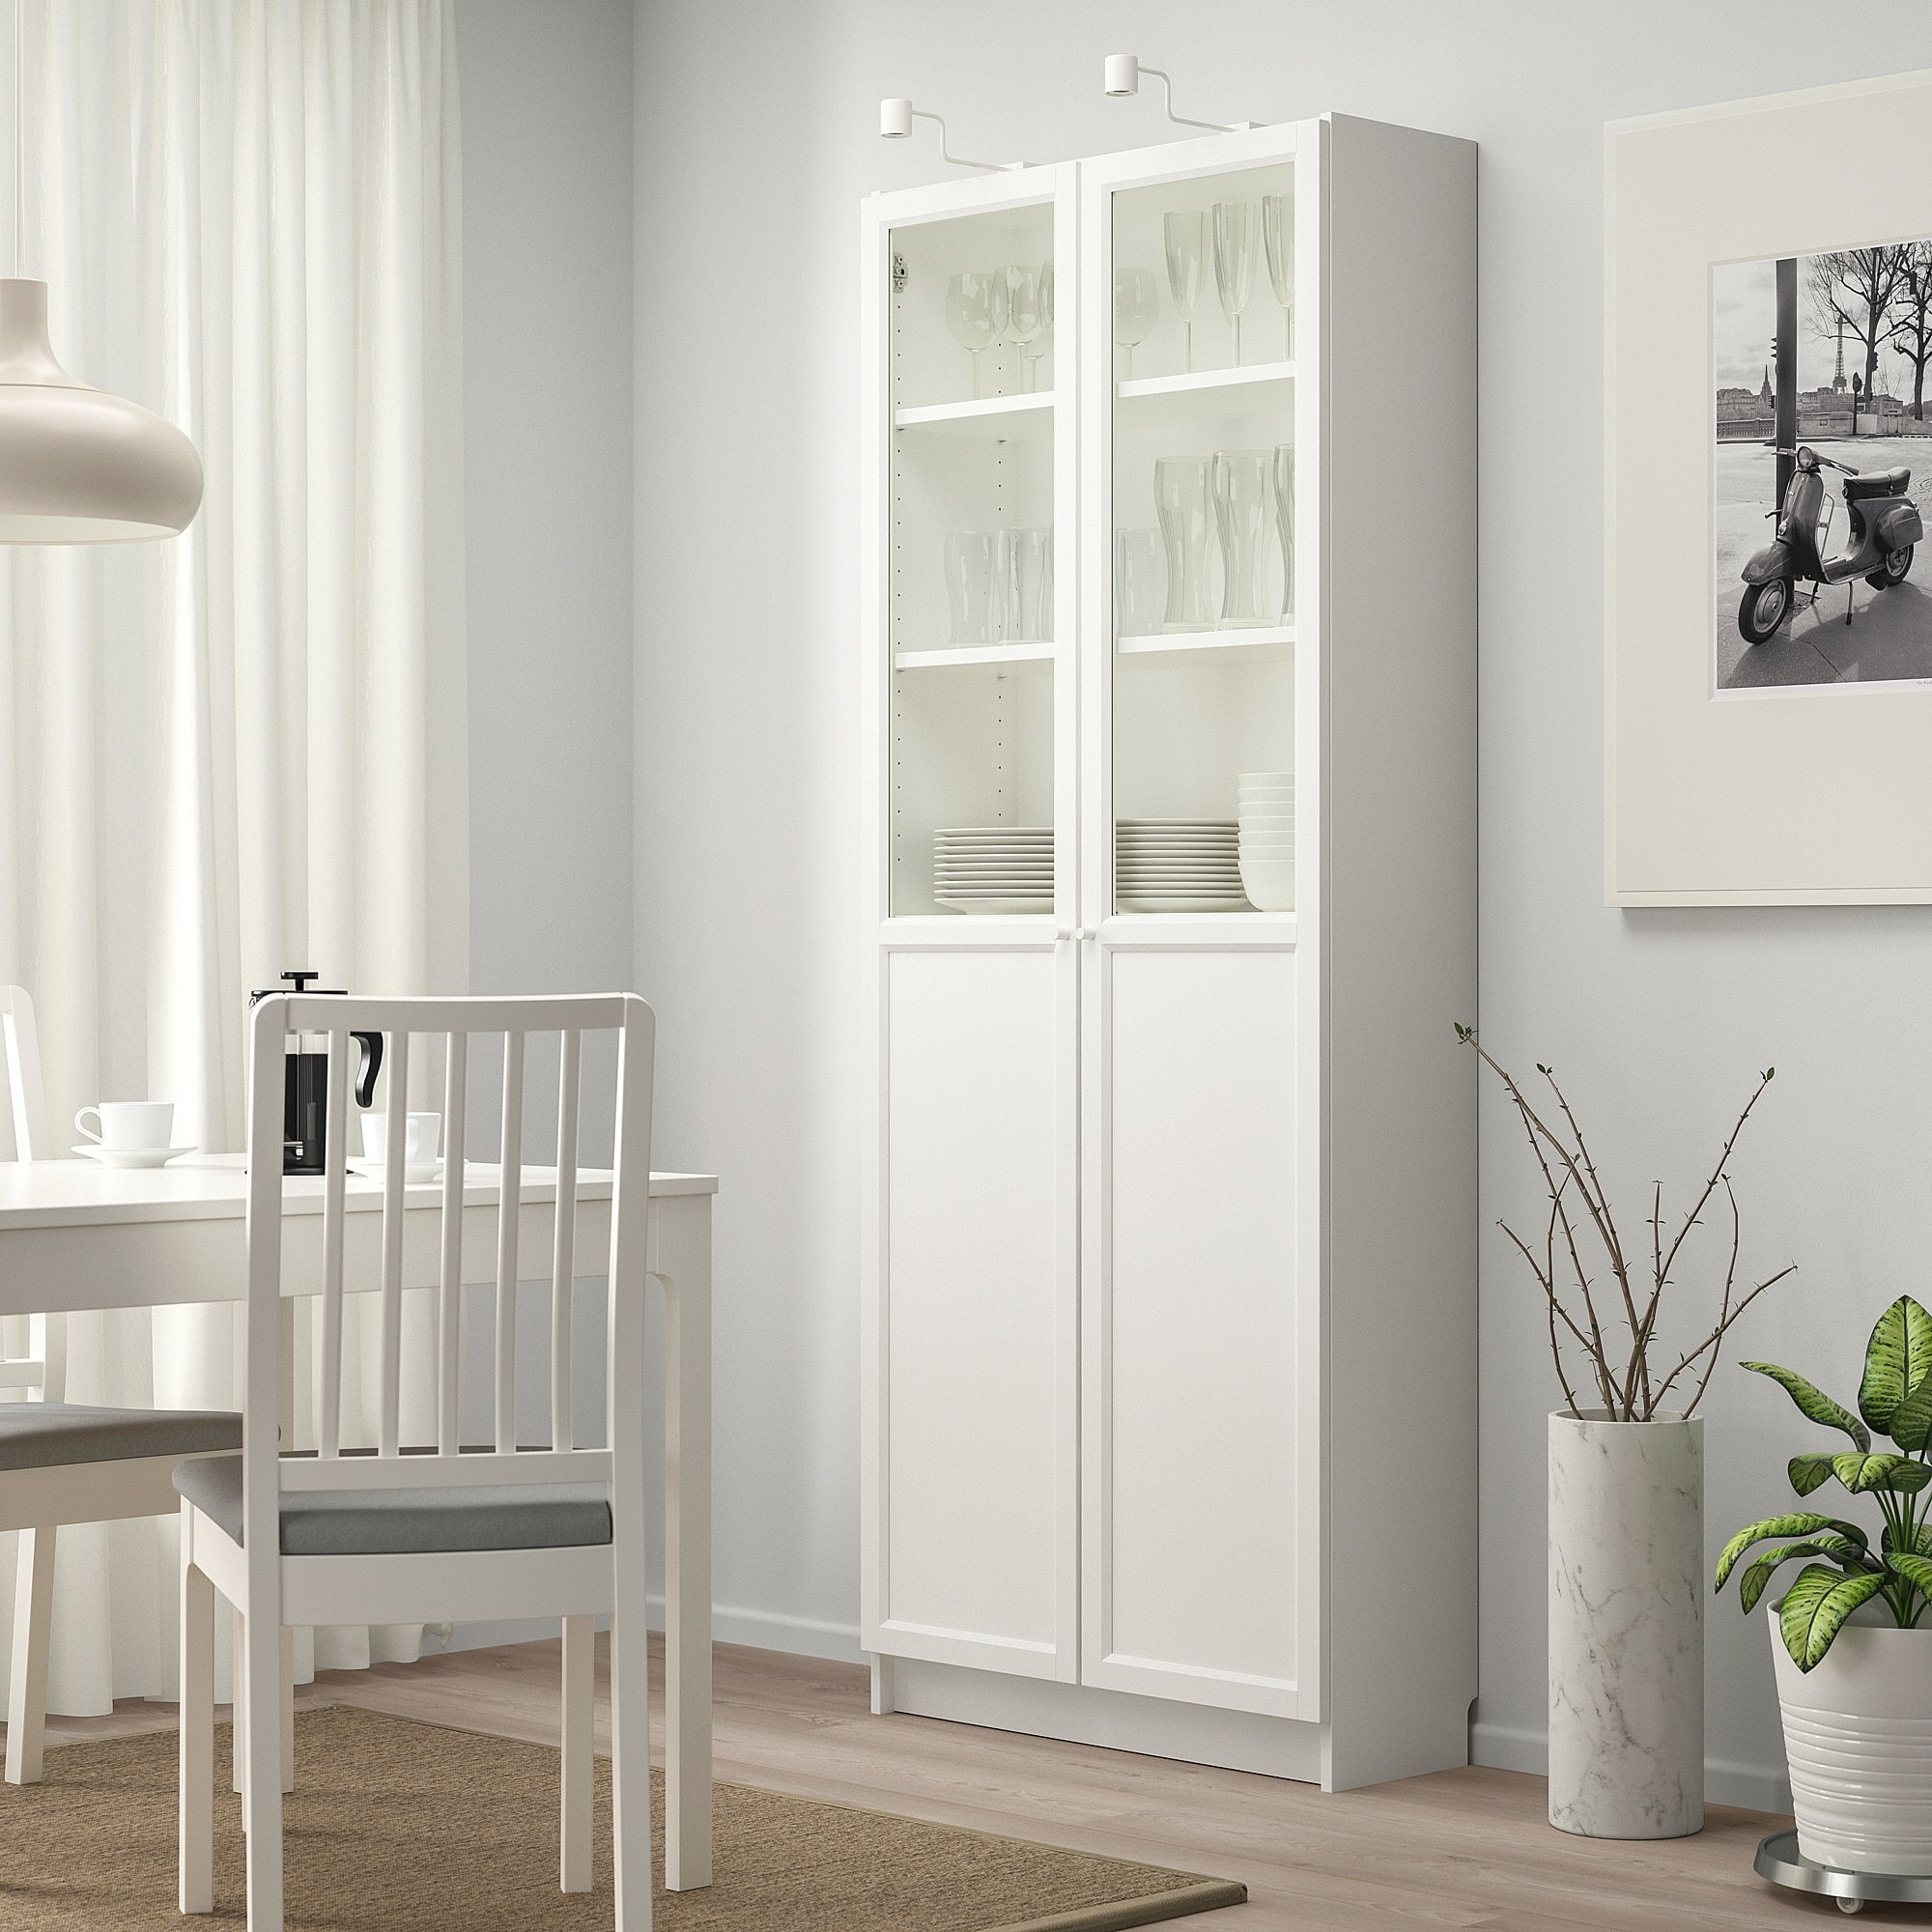 18++ Living room doors white with glass ideas in 2021